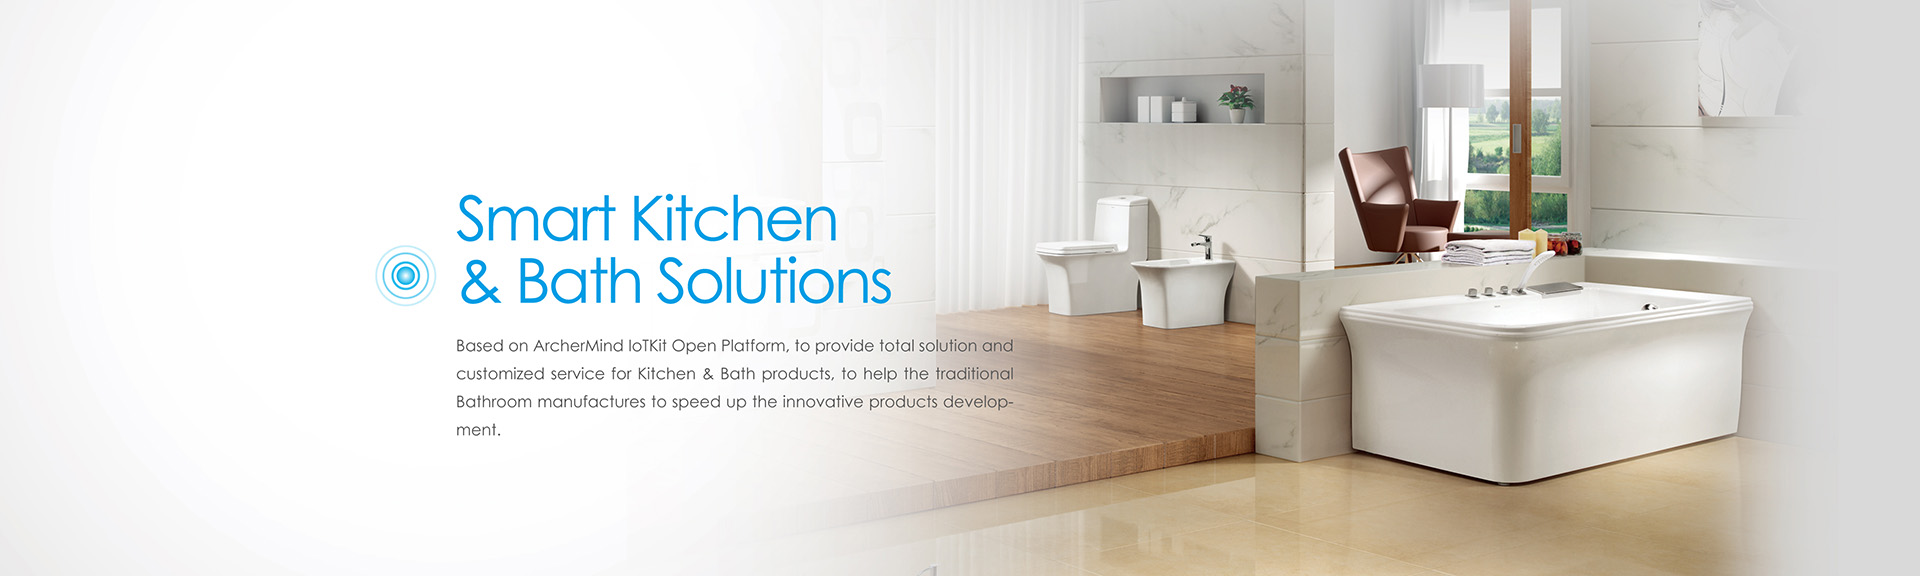 Smart Kitchen & Bath – ARCHERMIND